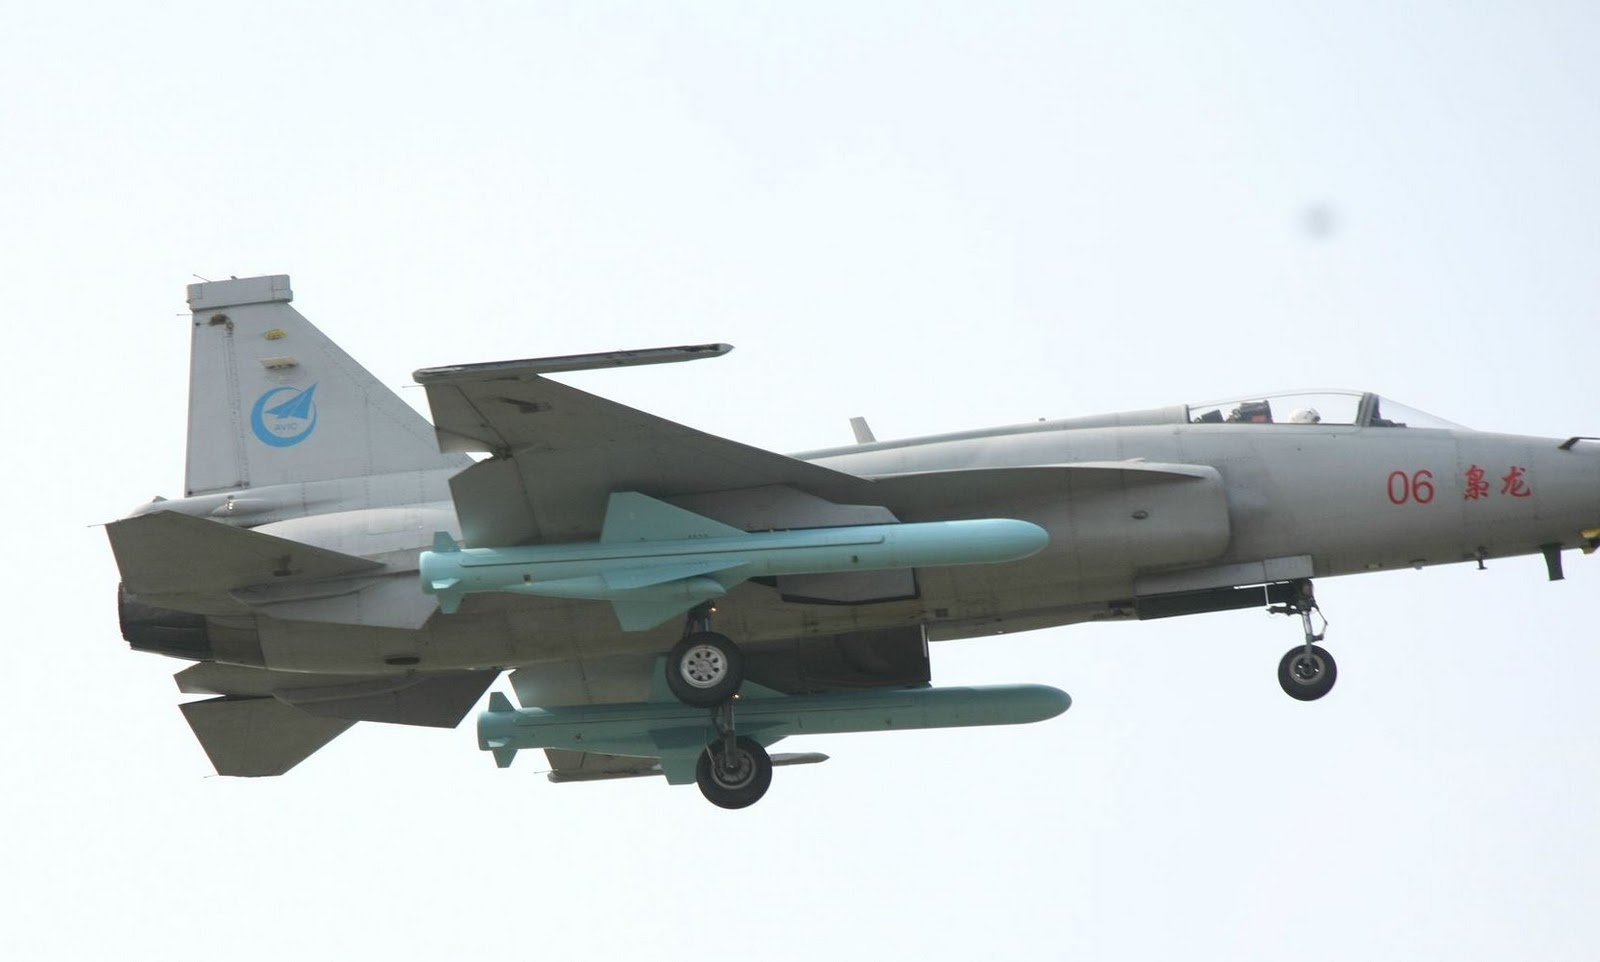 JANE´S : ARGENTINA NEGOCIA SISTEMAS DE MISILES CHINOS JF-17+Thunder+C-802A+Anti-Ship+cruise+missile+with+range+of+180+kilometers+255+c803+yj83+PLAAF+Navy+attack+operational+maritime+fighter+jet+pakistan+air+force+china+%25283%2529